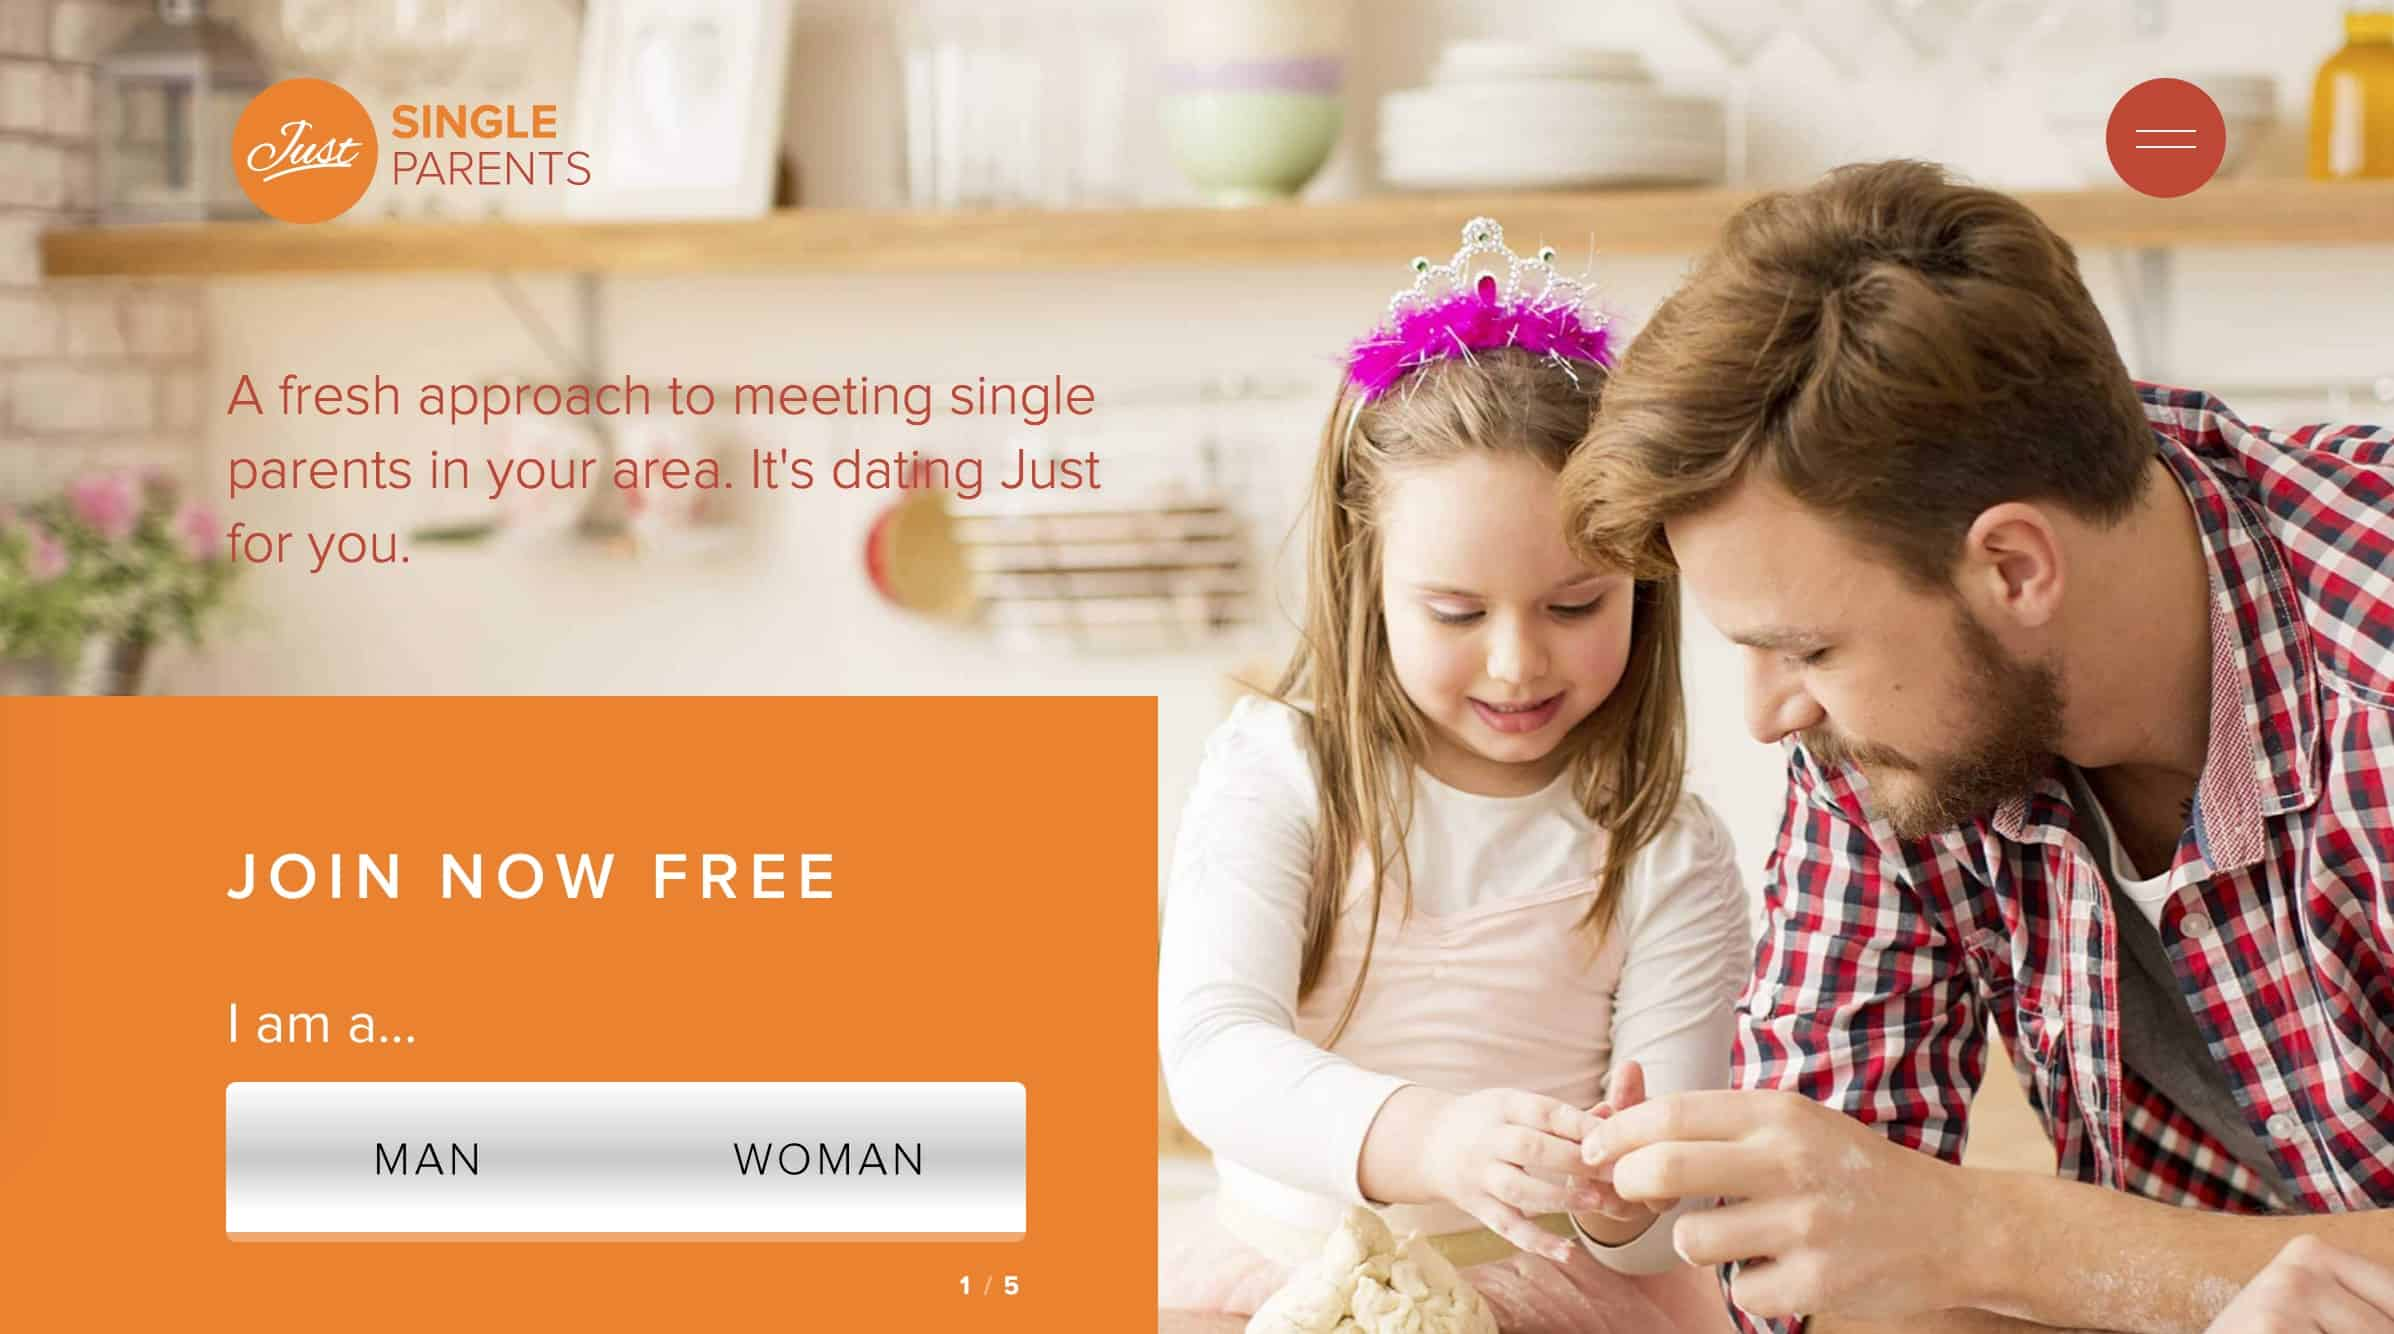 ukmerge single parent dating site Free single parents dating site for moms and dads does looking after your kids full-time make you feel isolated from the world if you're nodding your head then our special dating category for moms and dads is the perfect group for you.